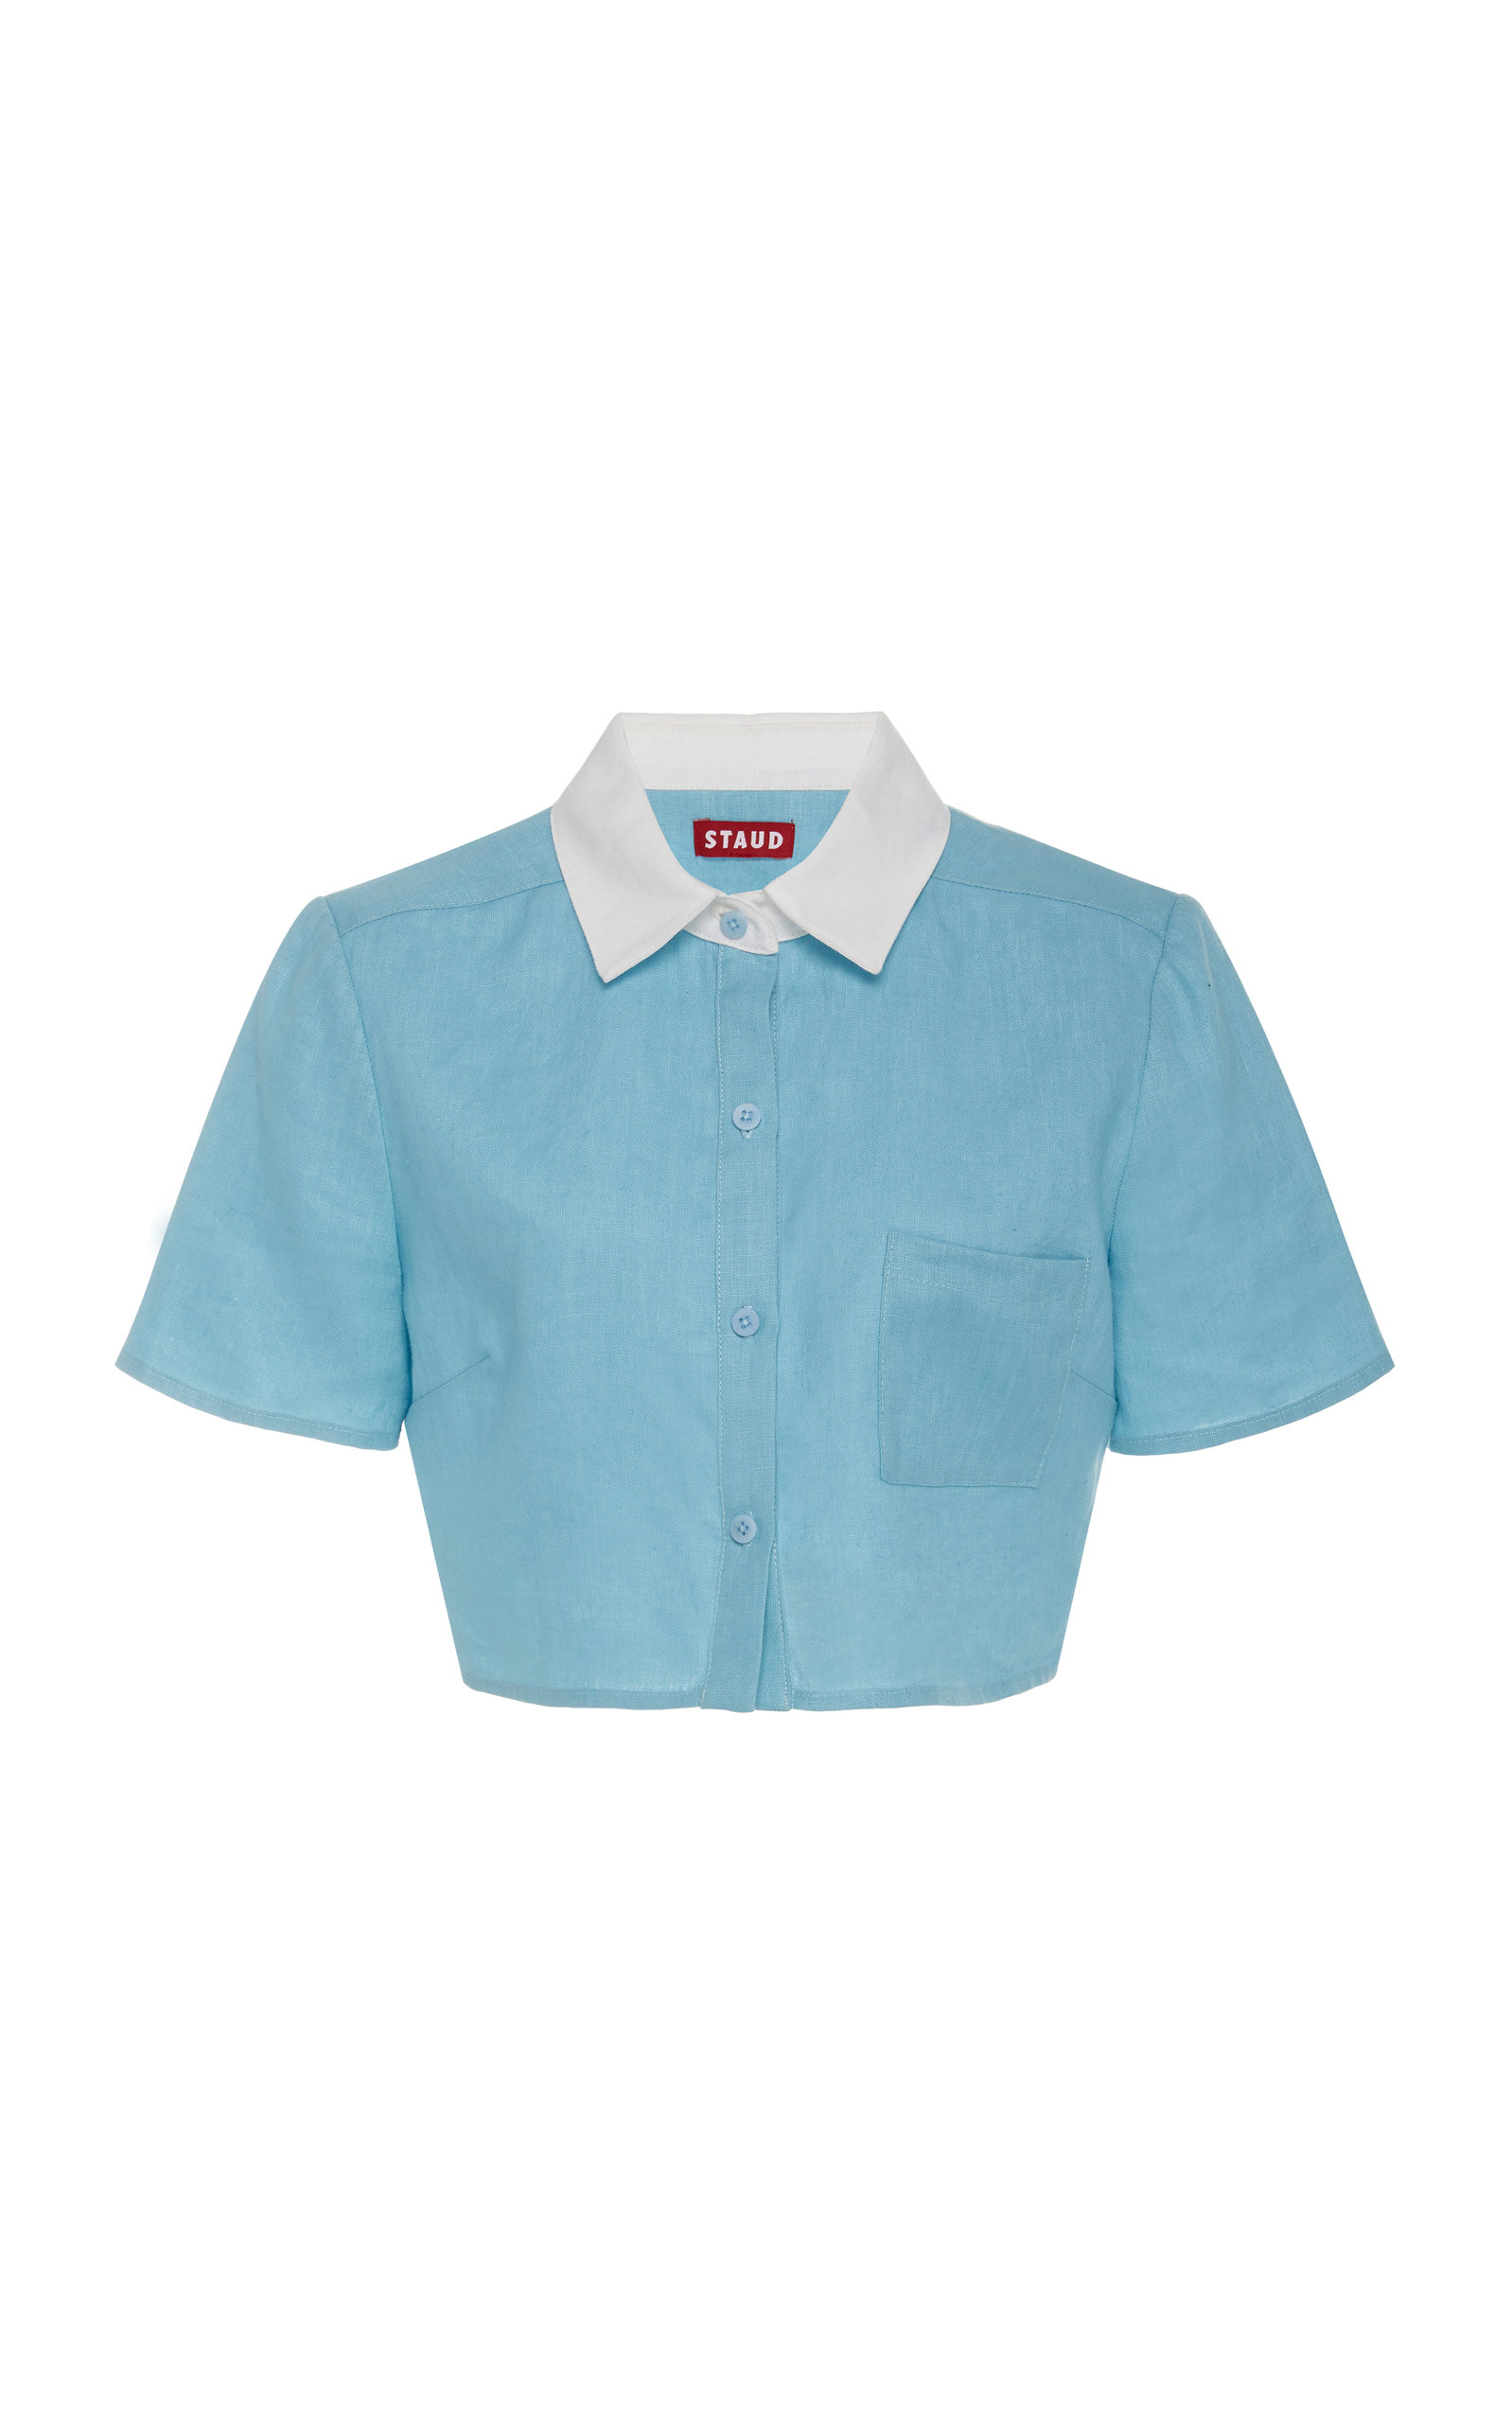 Staud Tops Copa Linen Polo Top